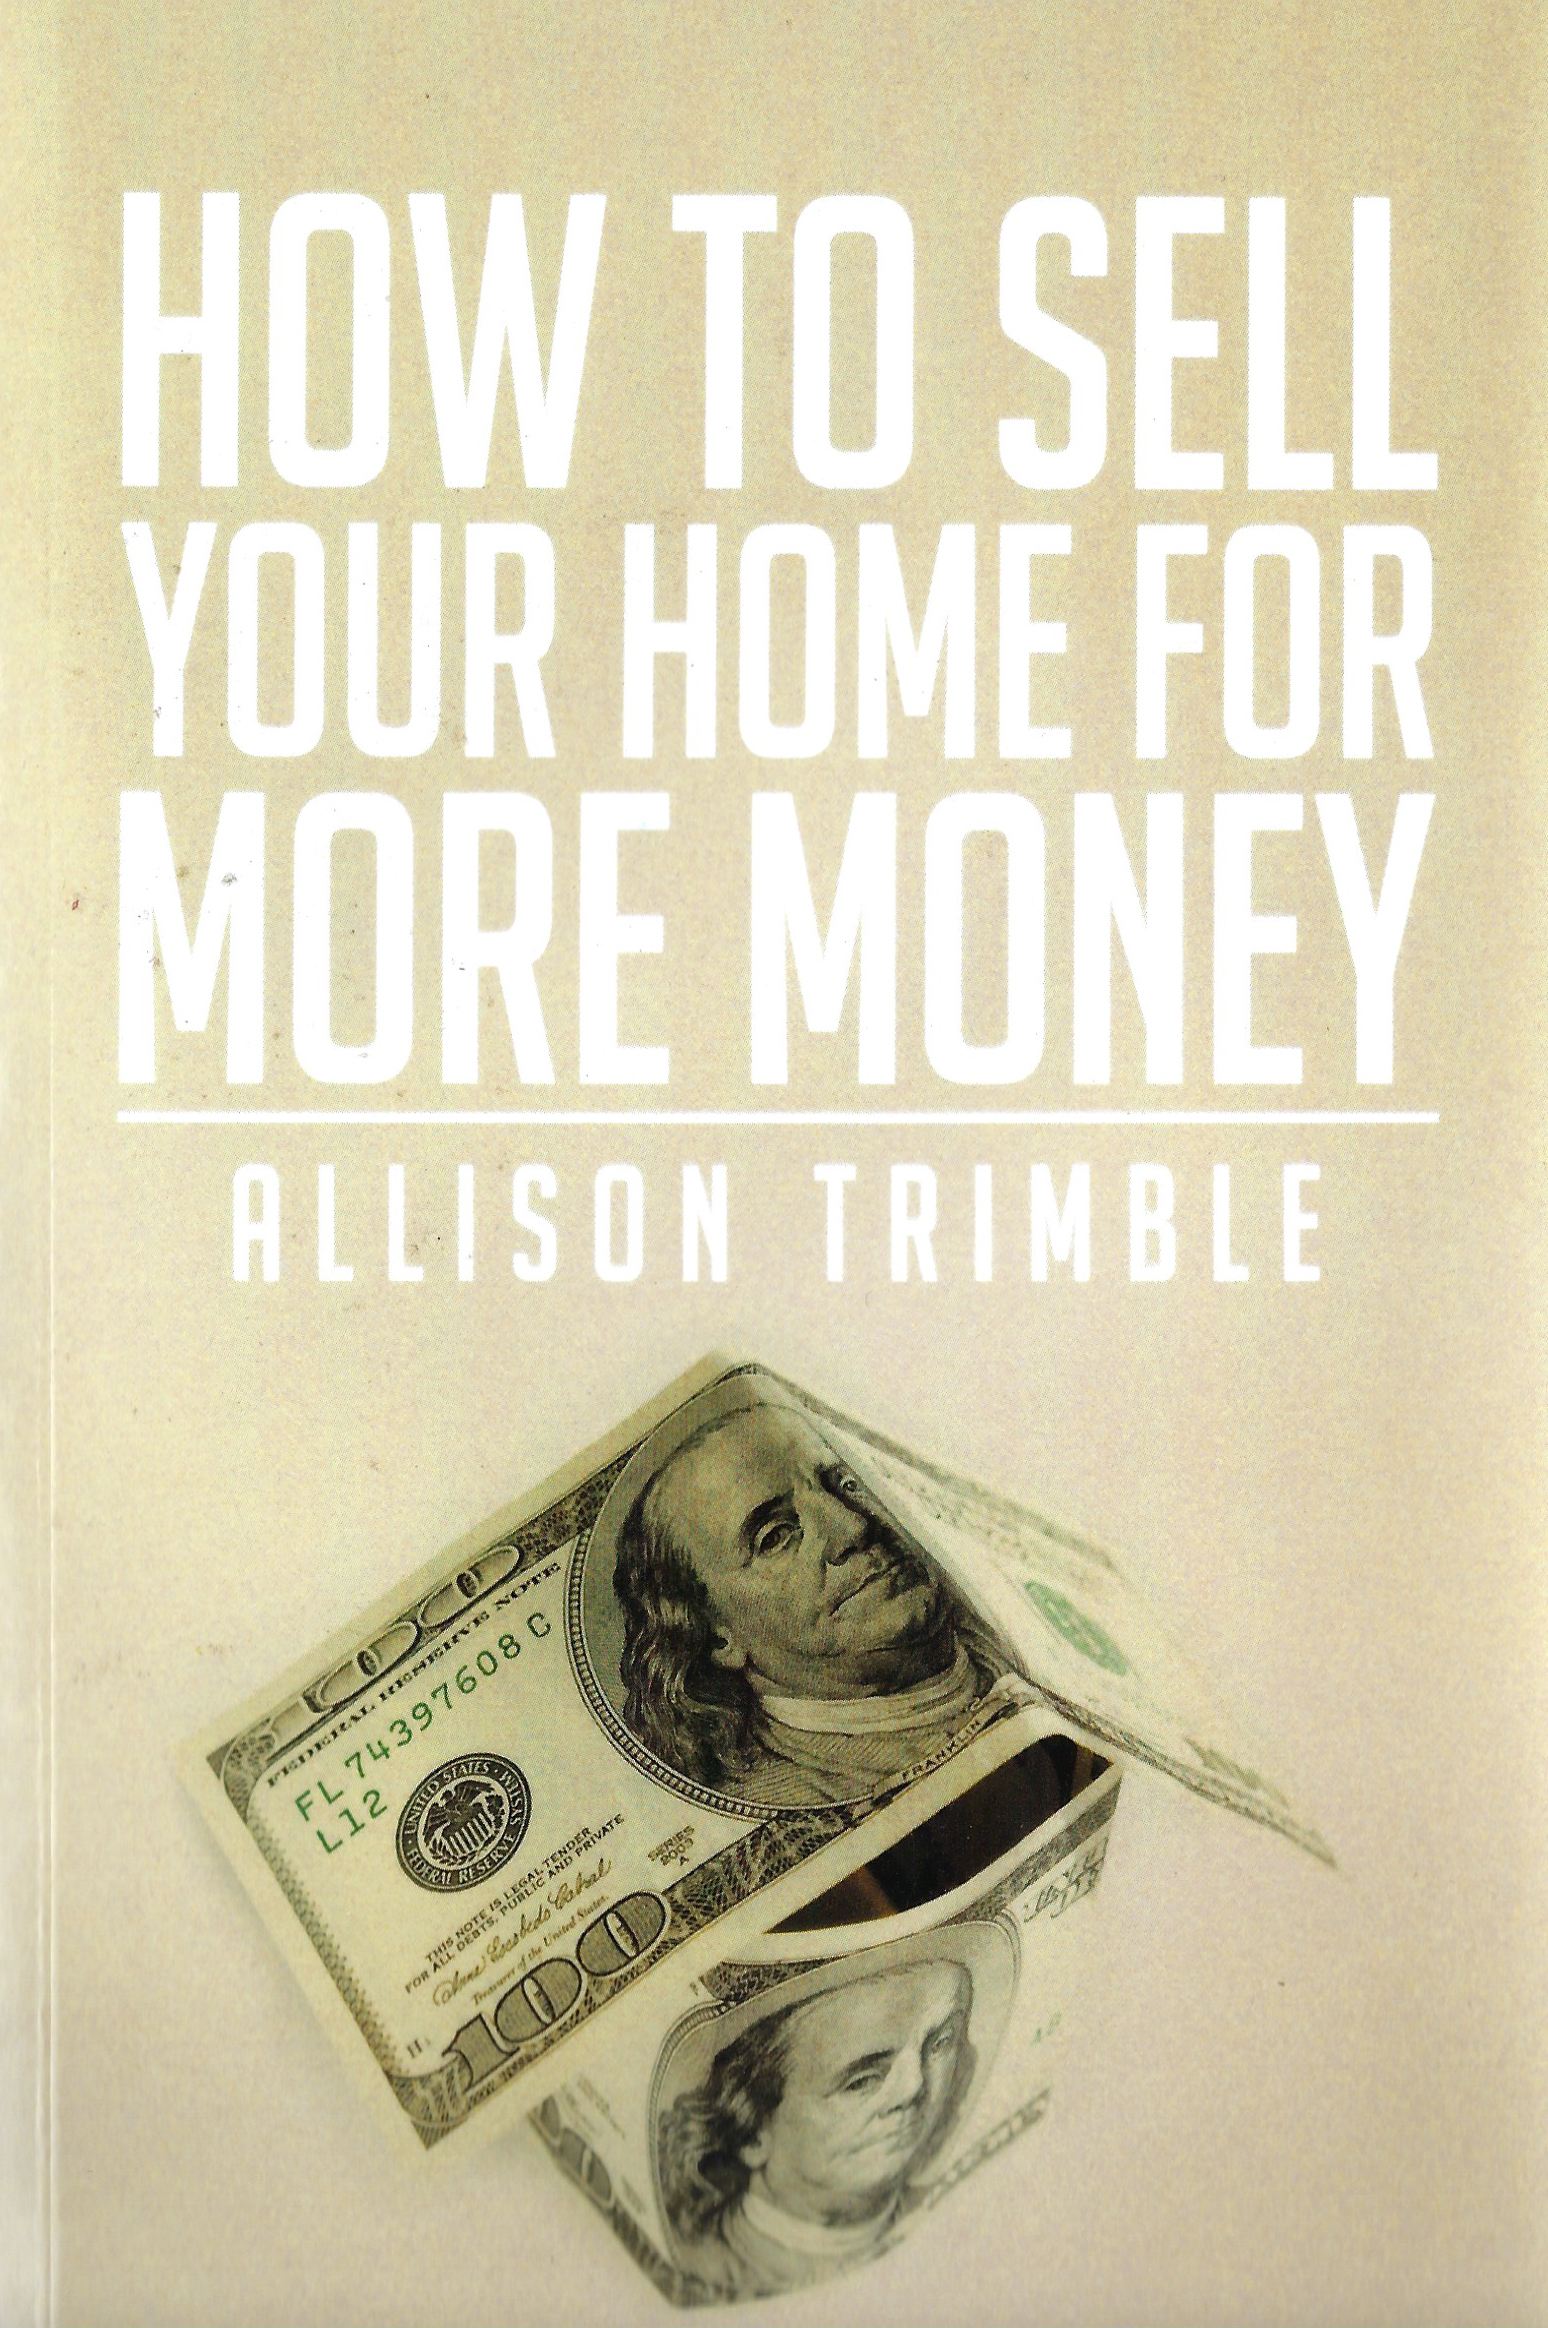 How to Sell Your Home for More Money: Allison Trimble